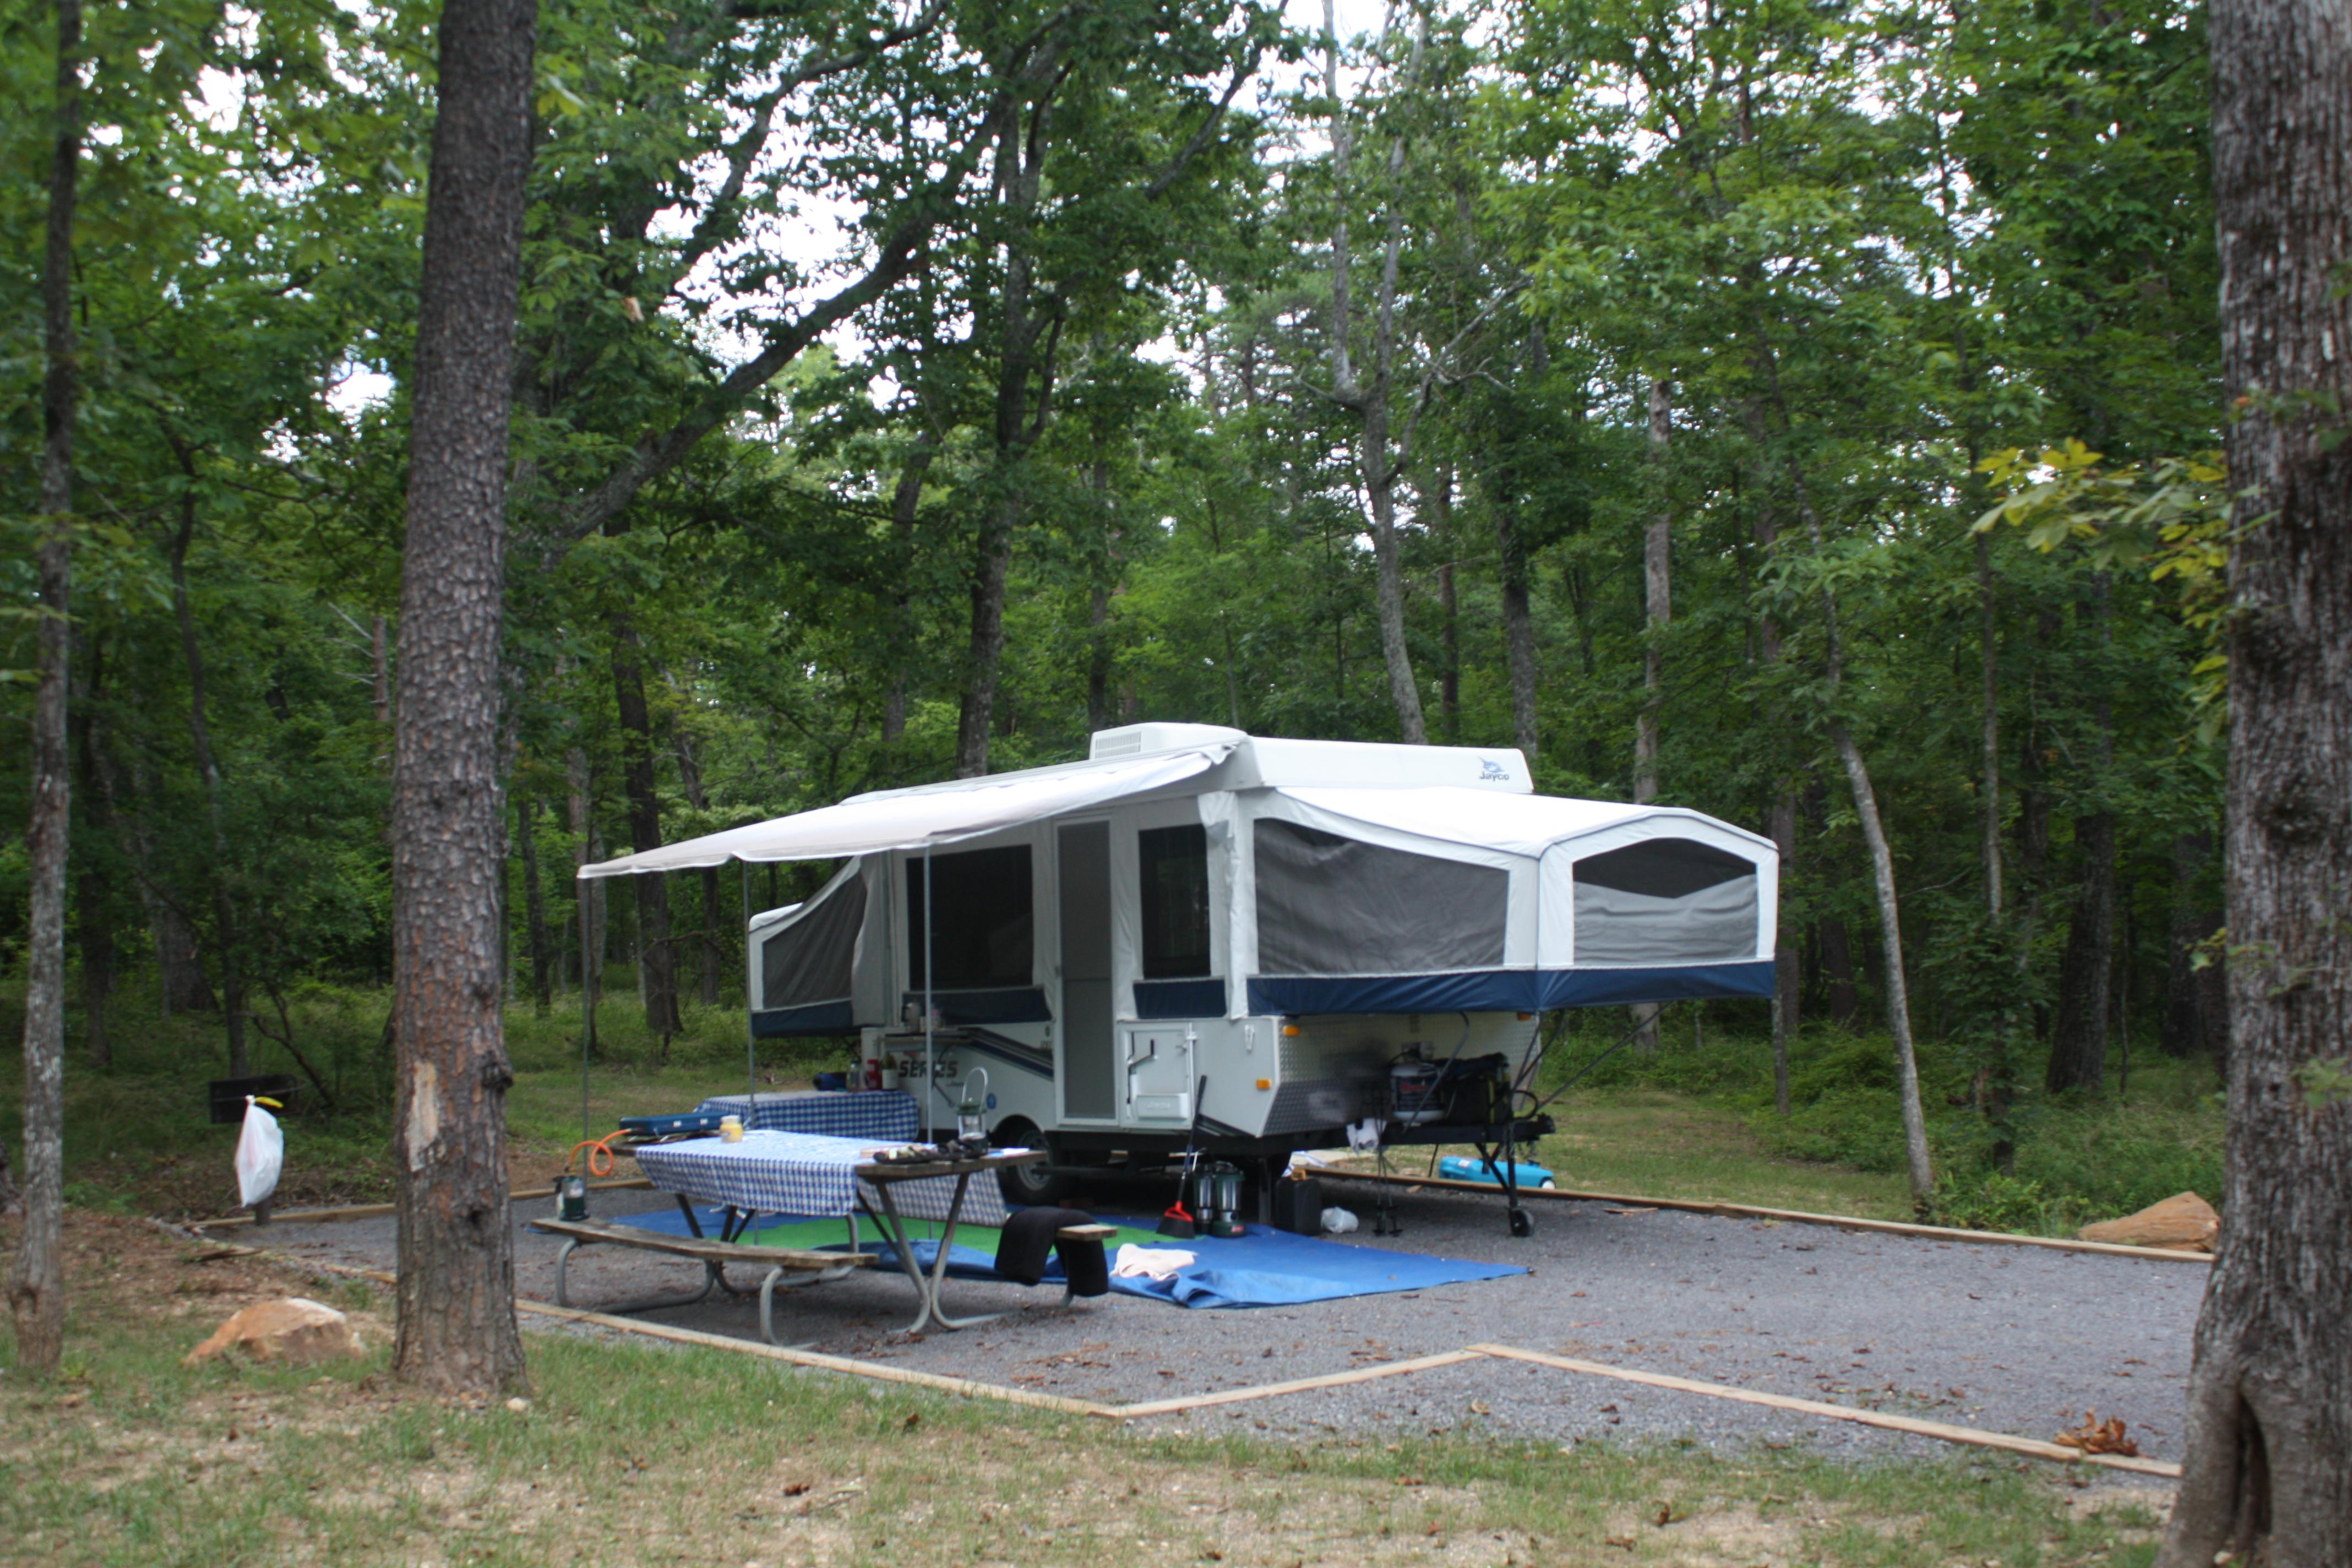 DSP Improved campground-great for tents or RVs!